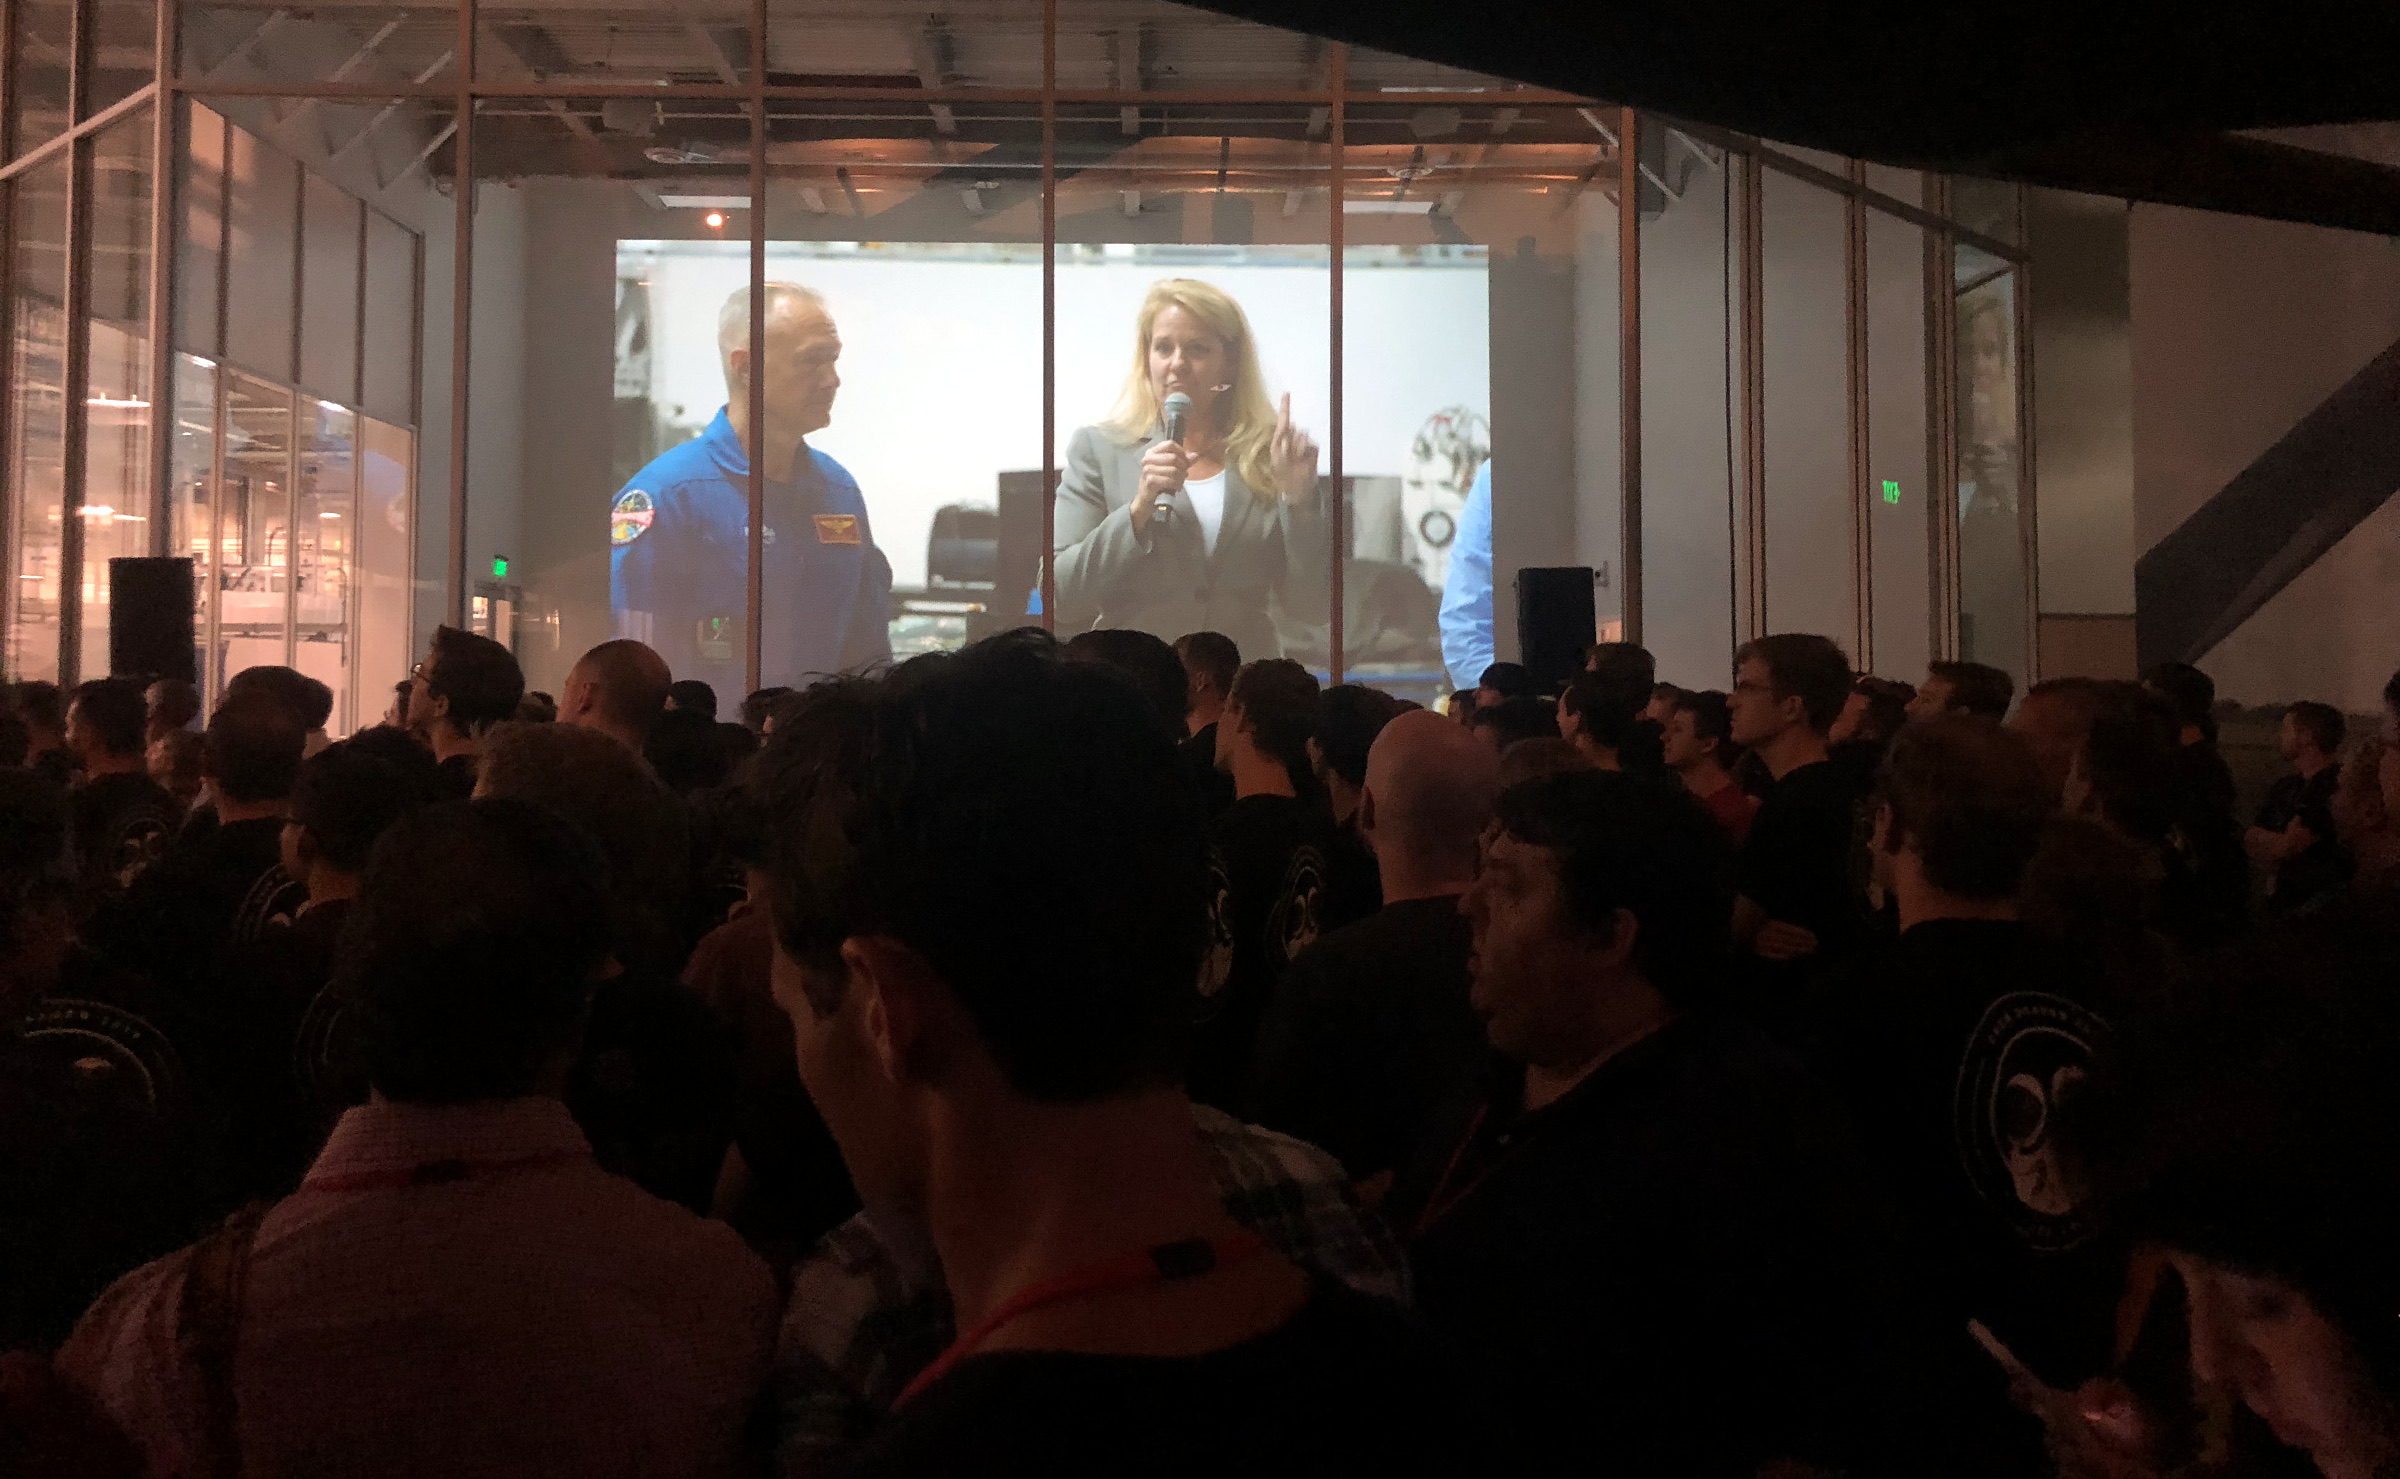 SpaceX president Gwynne Shotwell introduces astronauts, including Doug Hurley, to SpaceX employees.